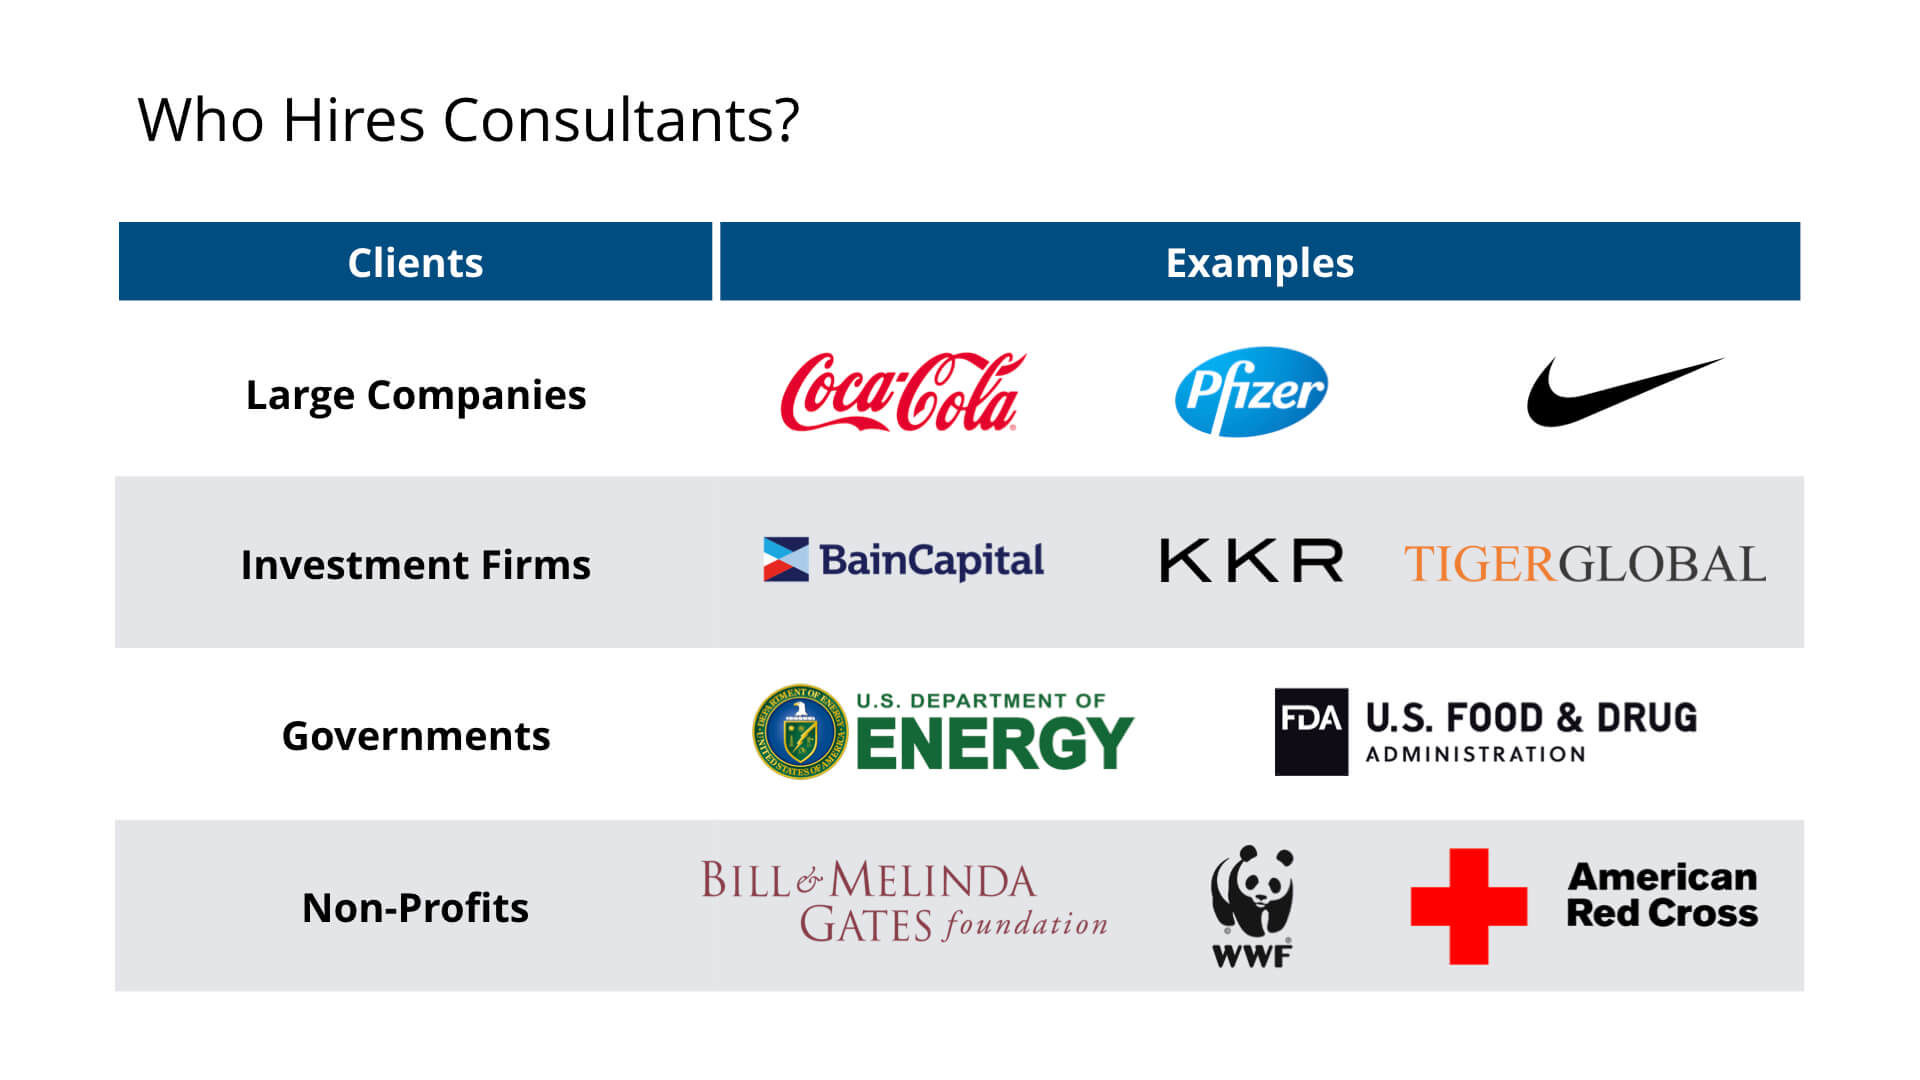 What Do Consultants Do - Who Hires Consulants